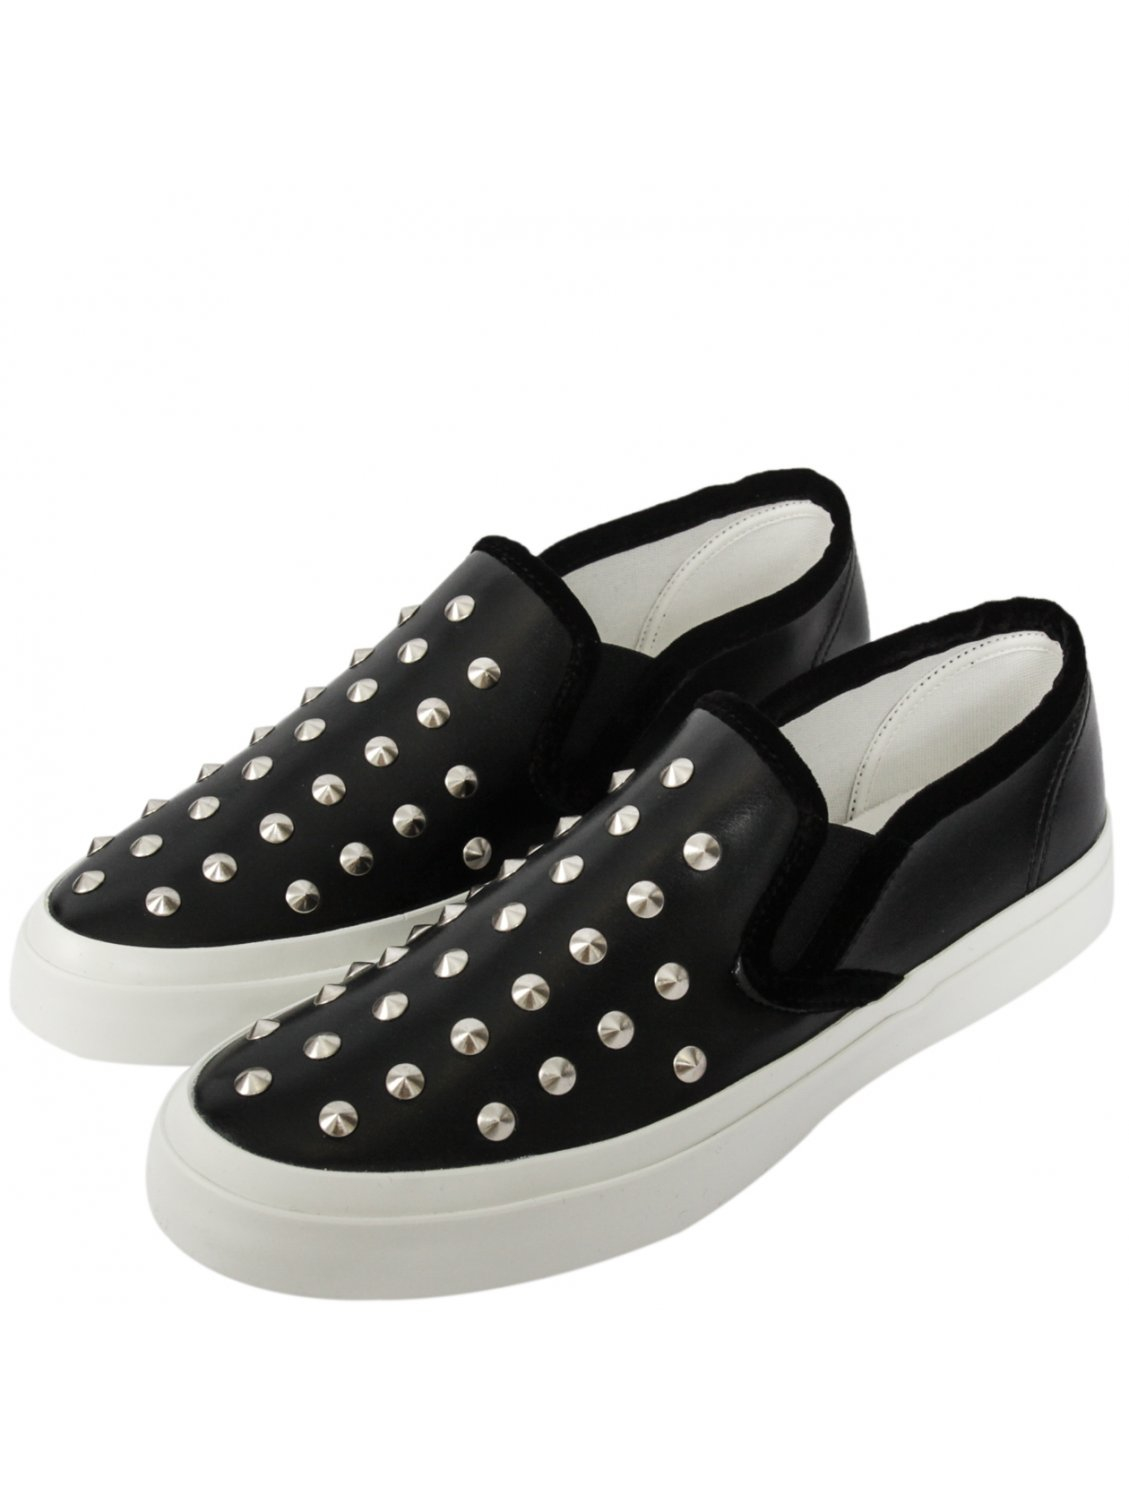 junya watanabe womens studded slip on shoes black in black